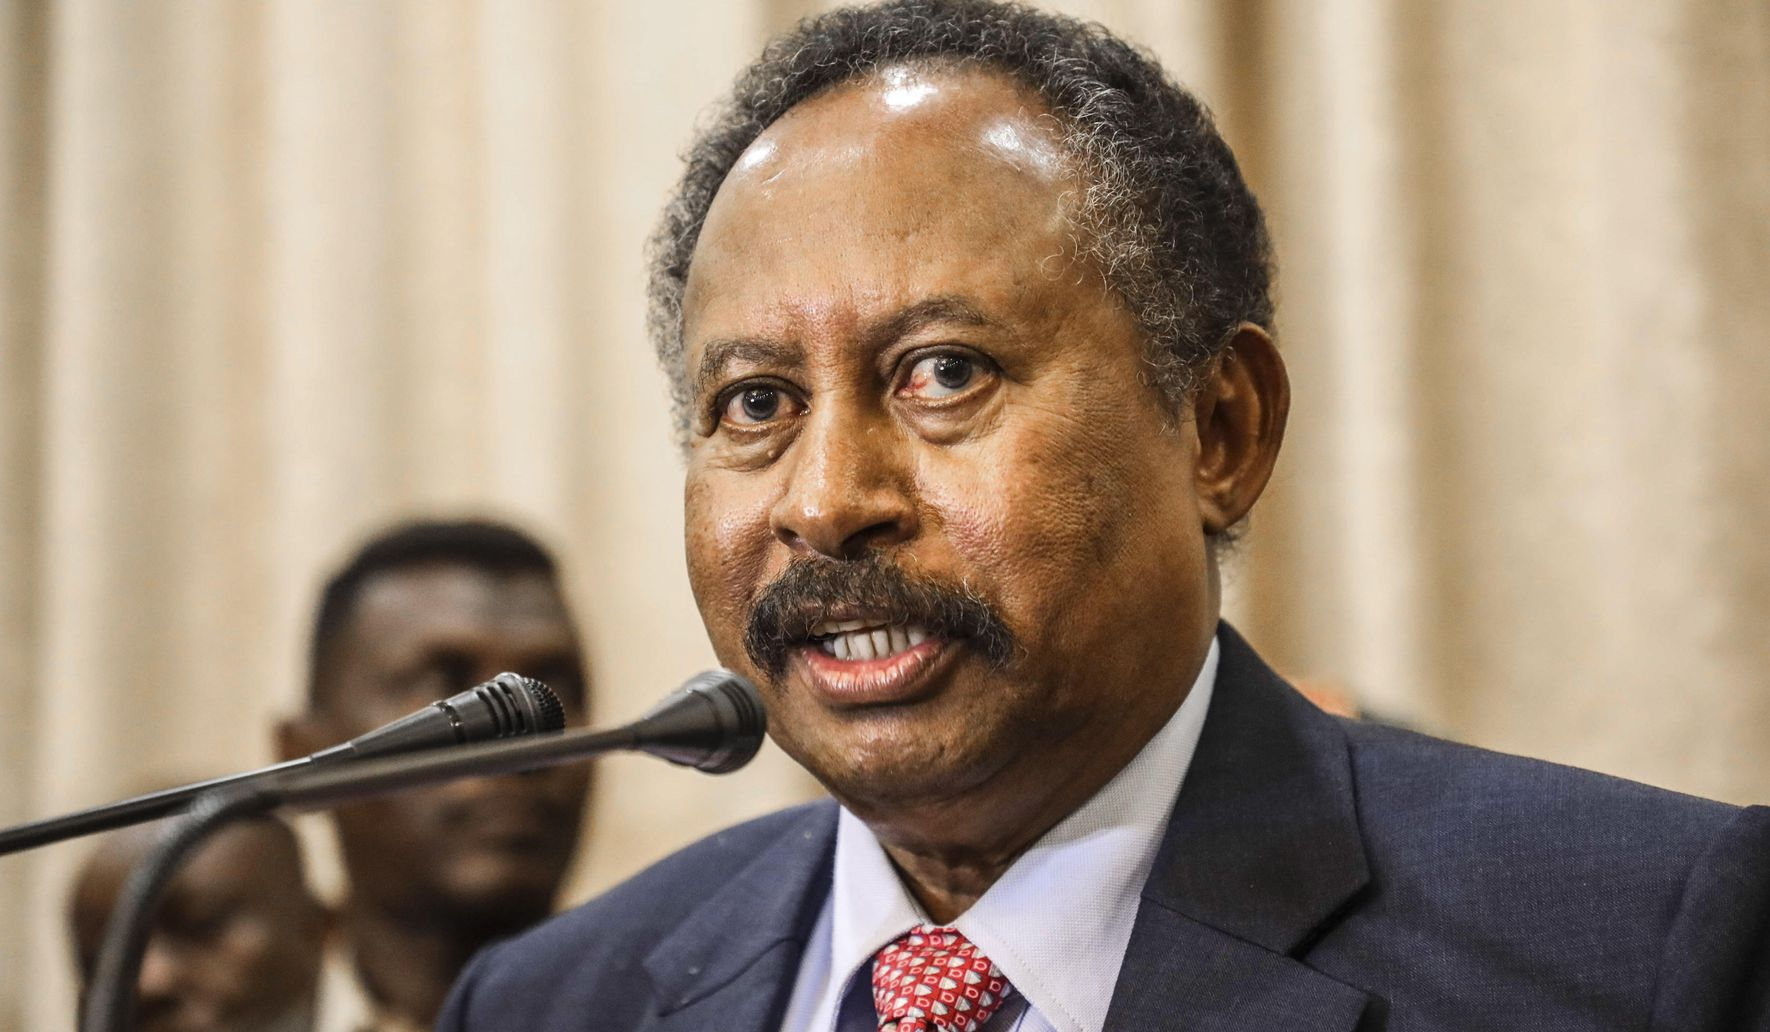 AP Interview: Sudan PM seeks end to country